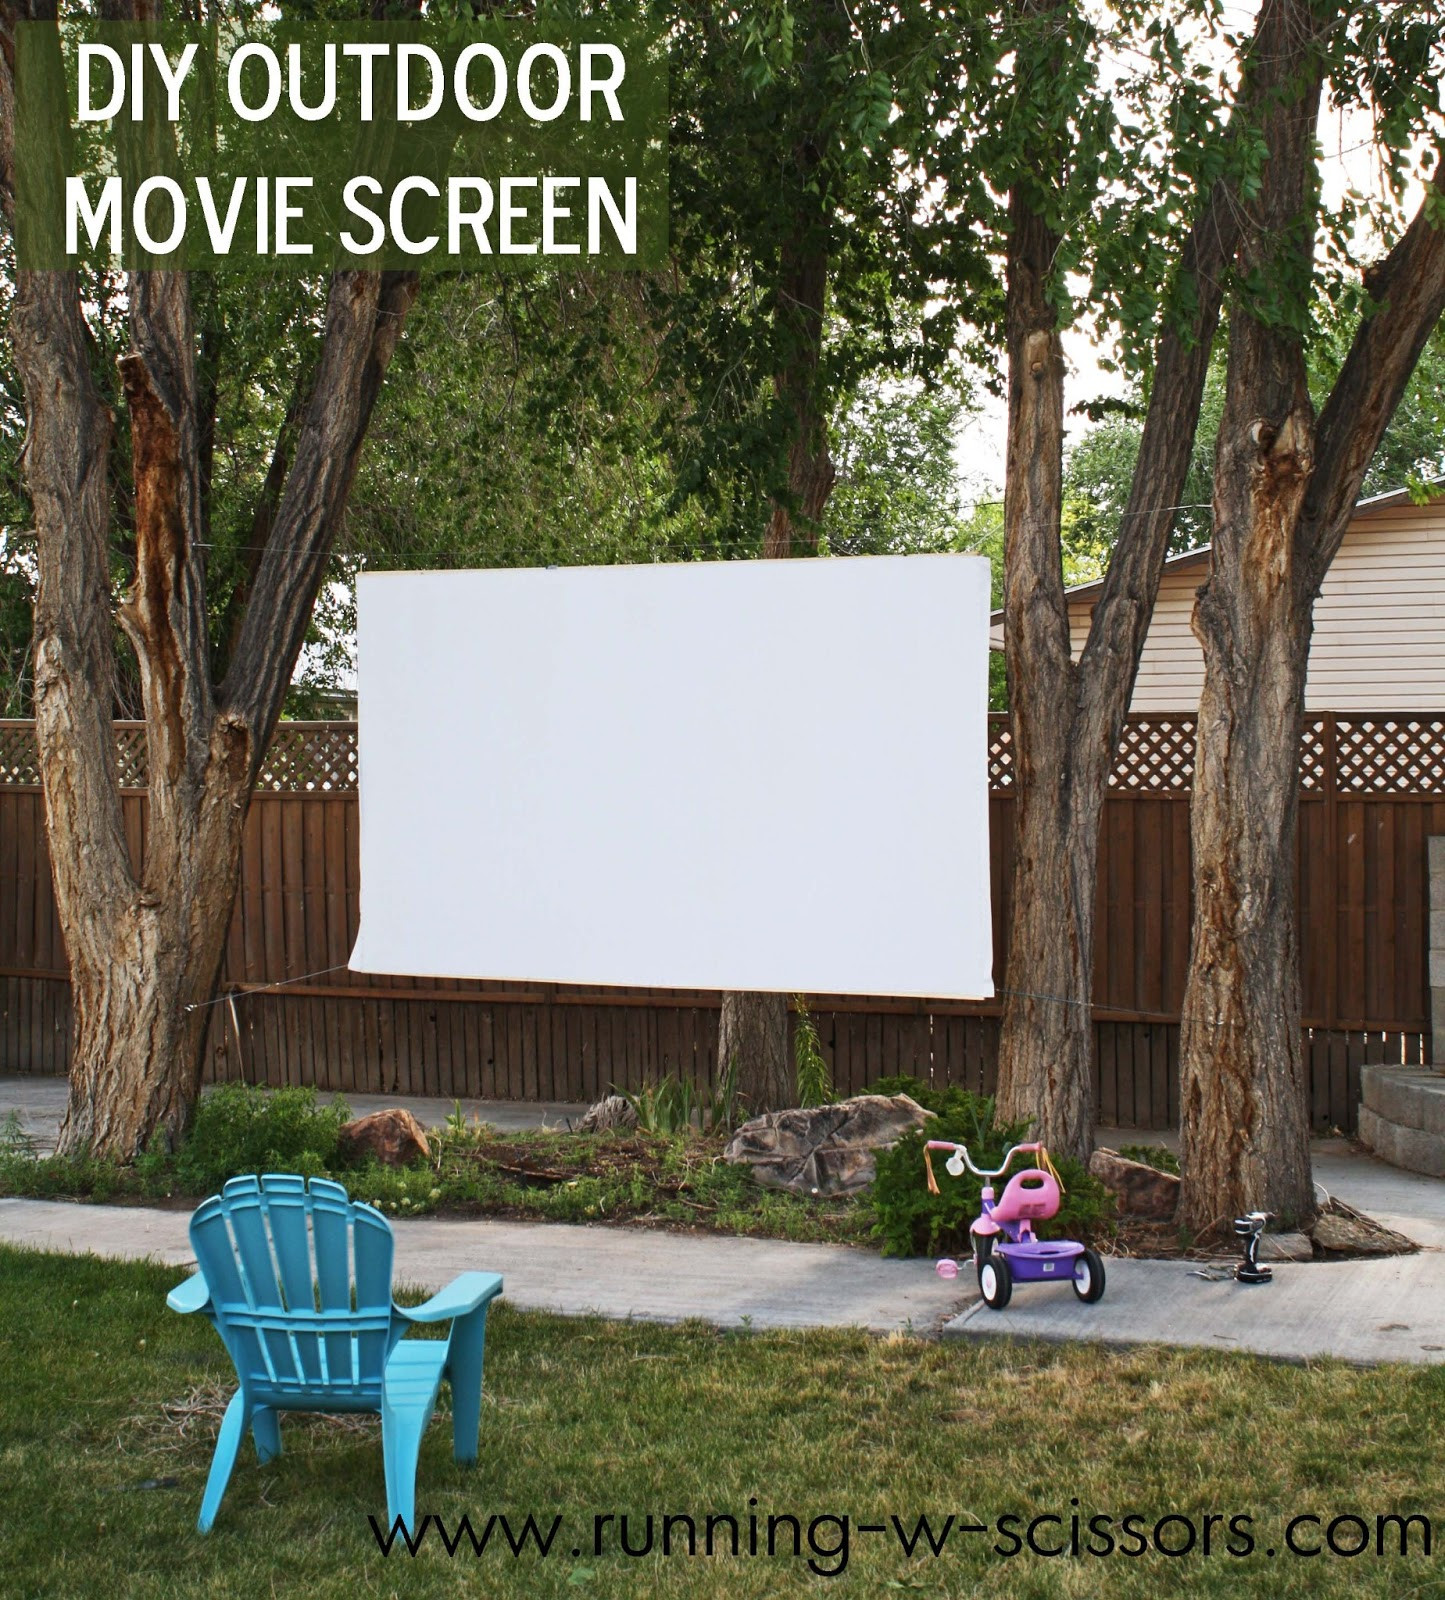 DIY Outdoor Movie Screen Material  Running With Scissors DIY Outdoor Movie Screen